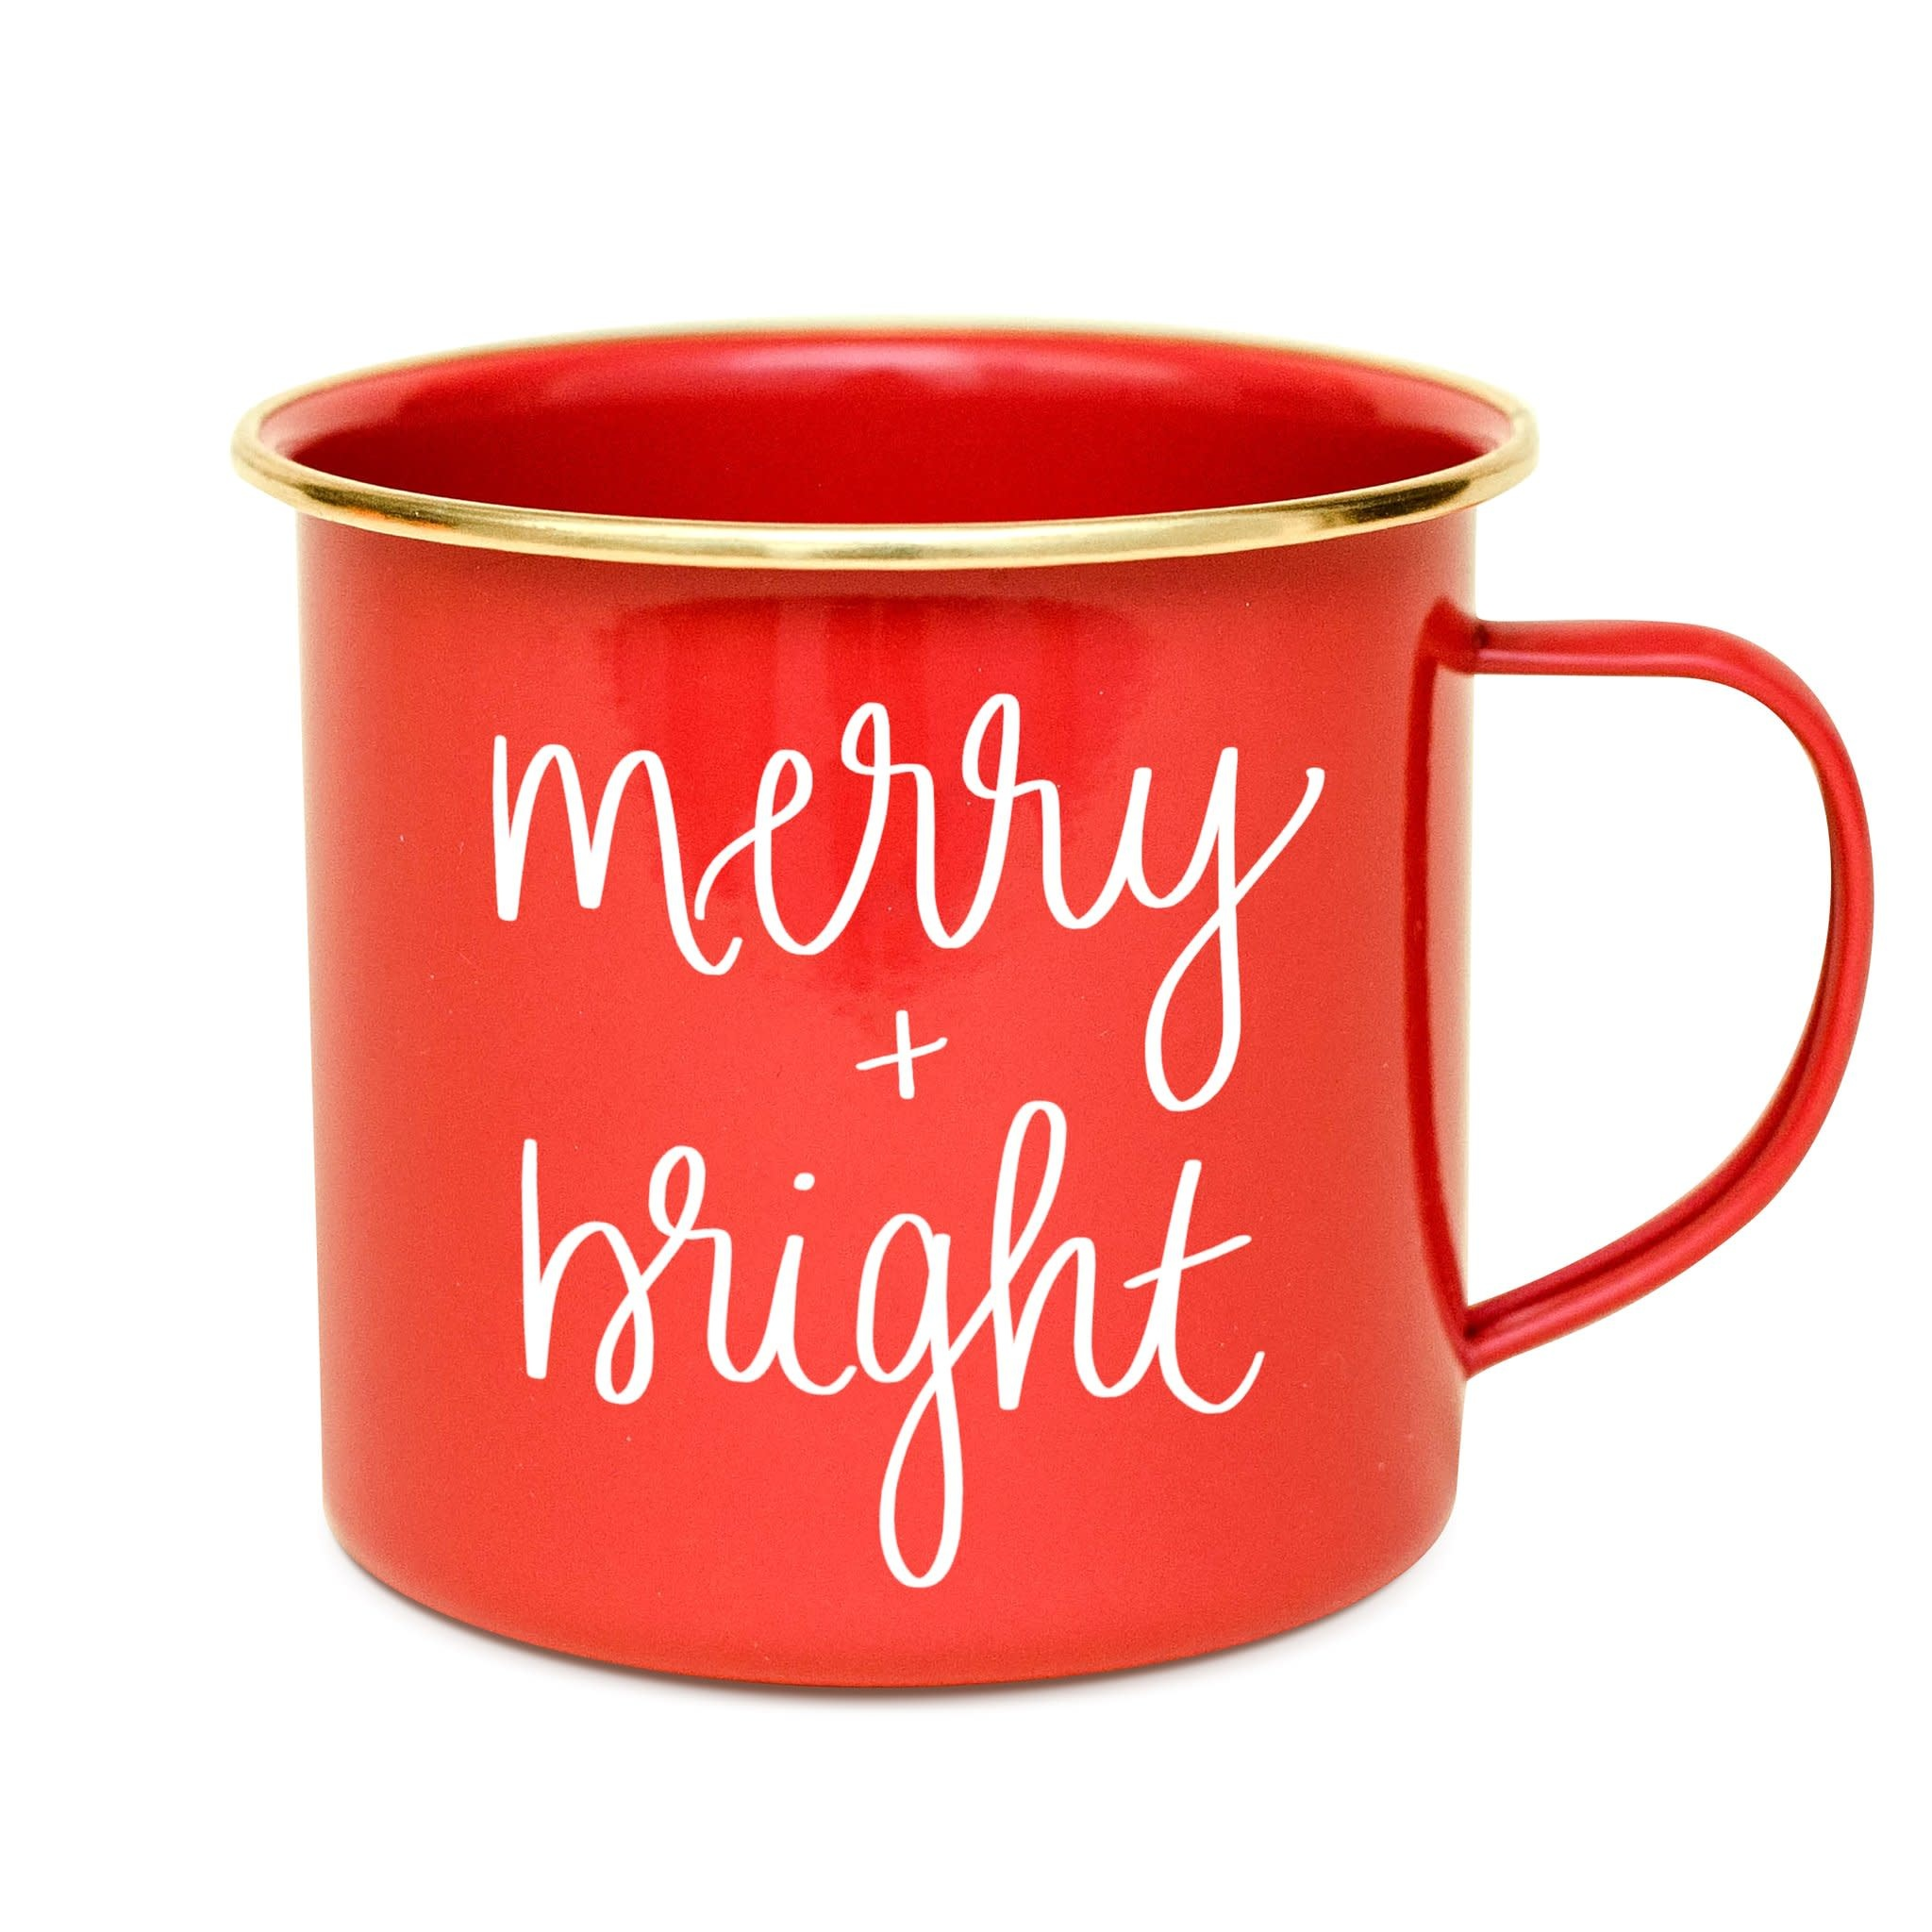 Merry & Bright Campfire Coffee Mug